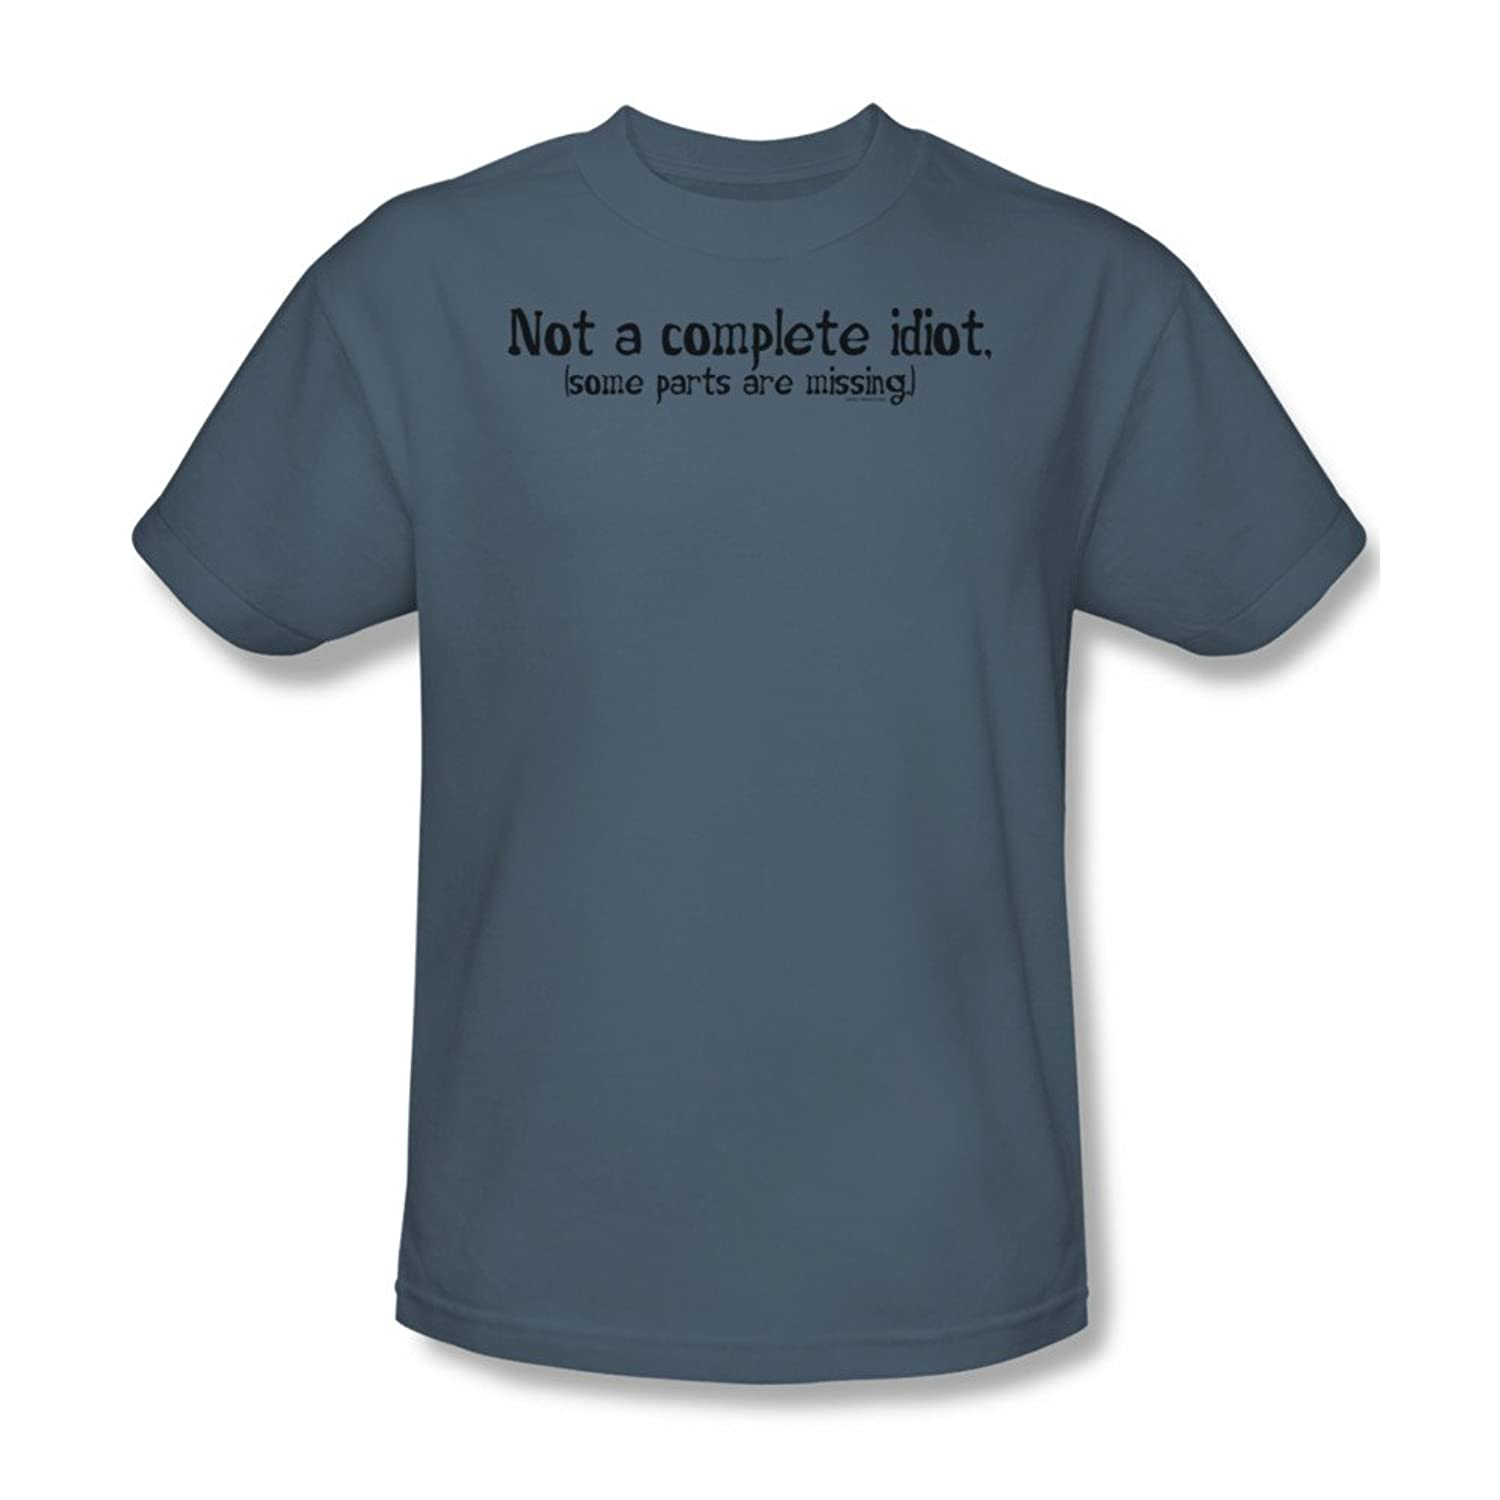 Not A Complete Idiot - Mens T-Shirt In Slate